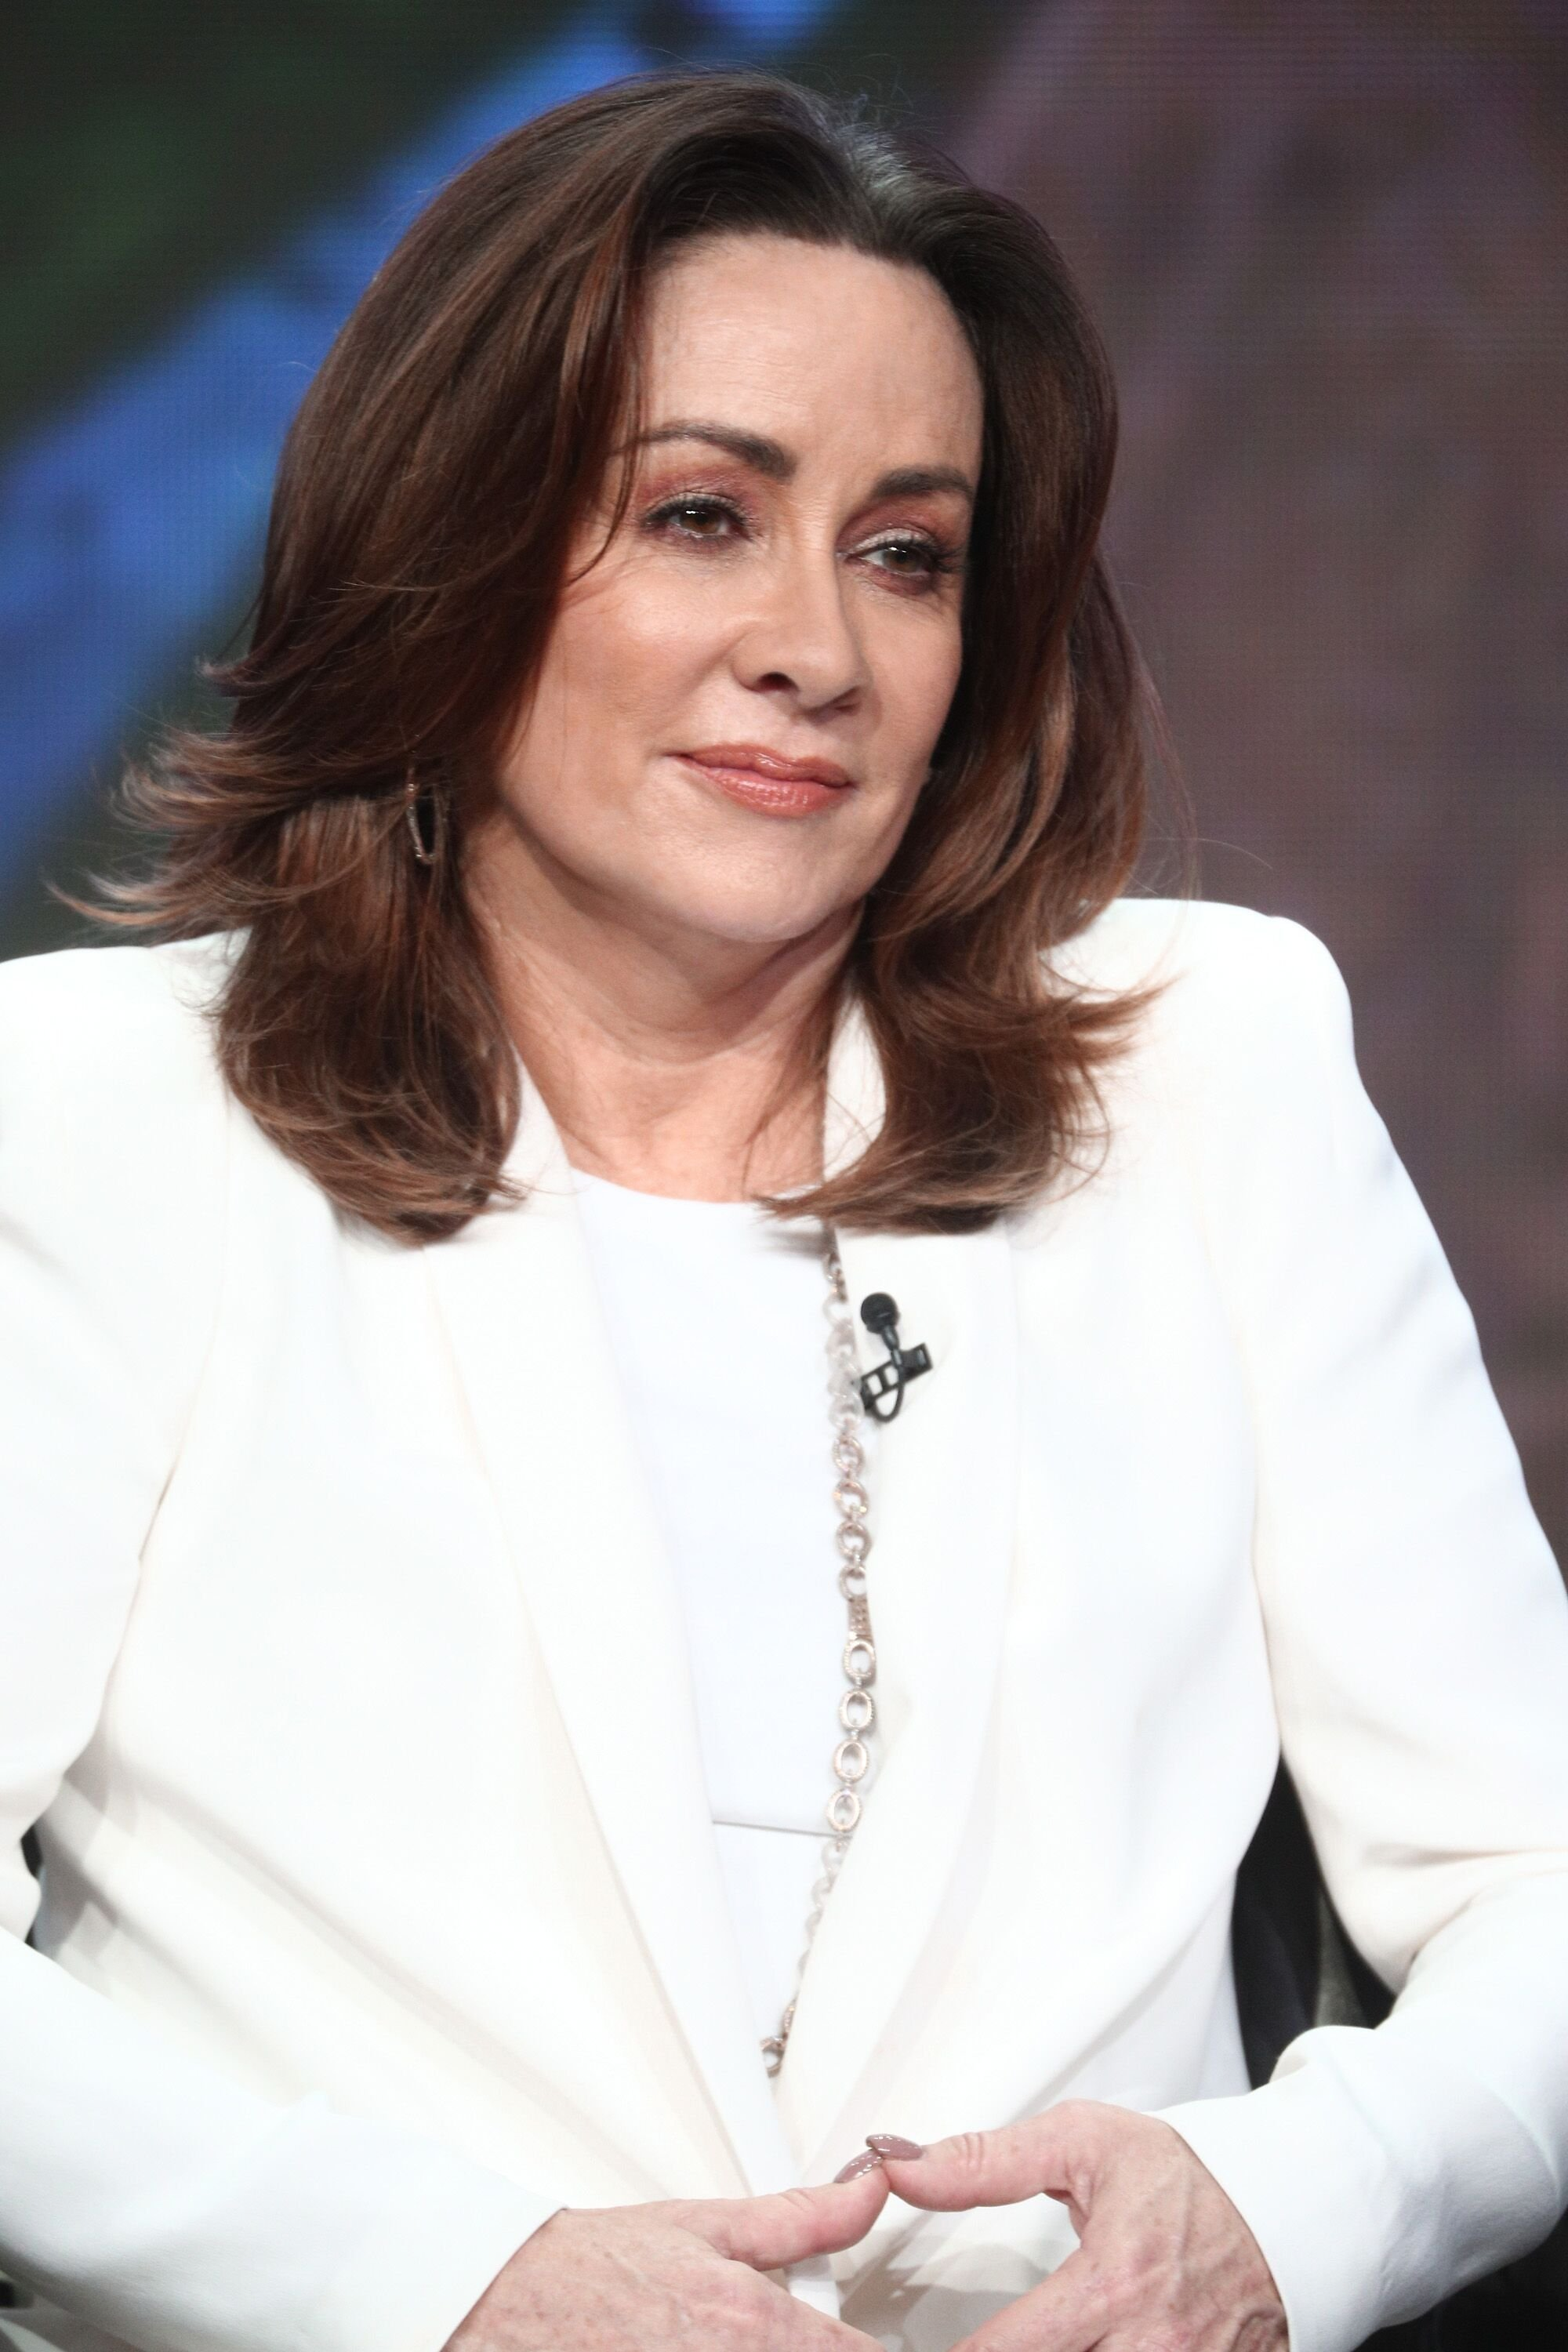 """Patricia Heaton promoting """"The Middle"""" during the 2017 Summer Television Critics Association Press Tour 